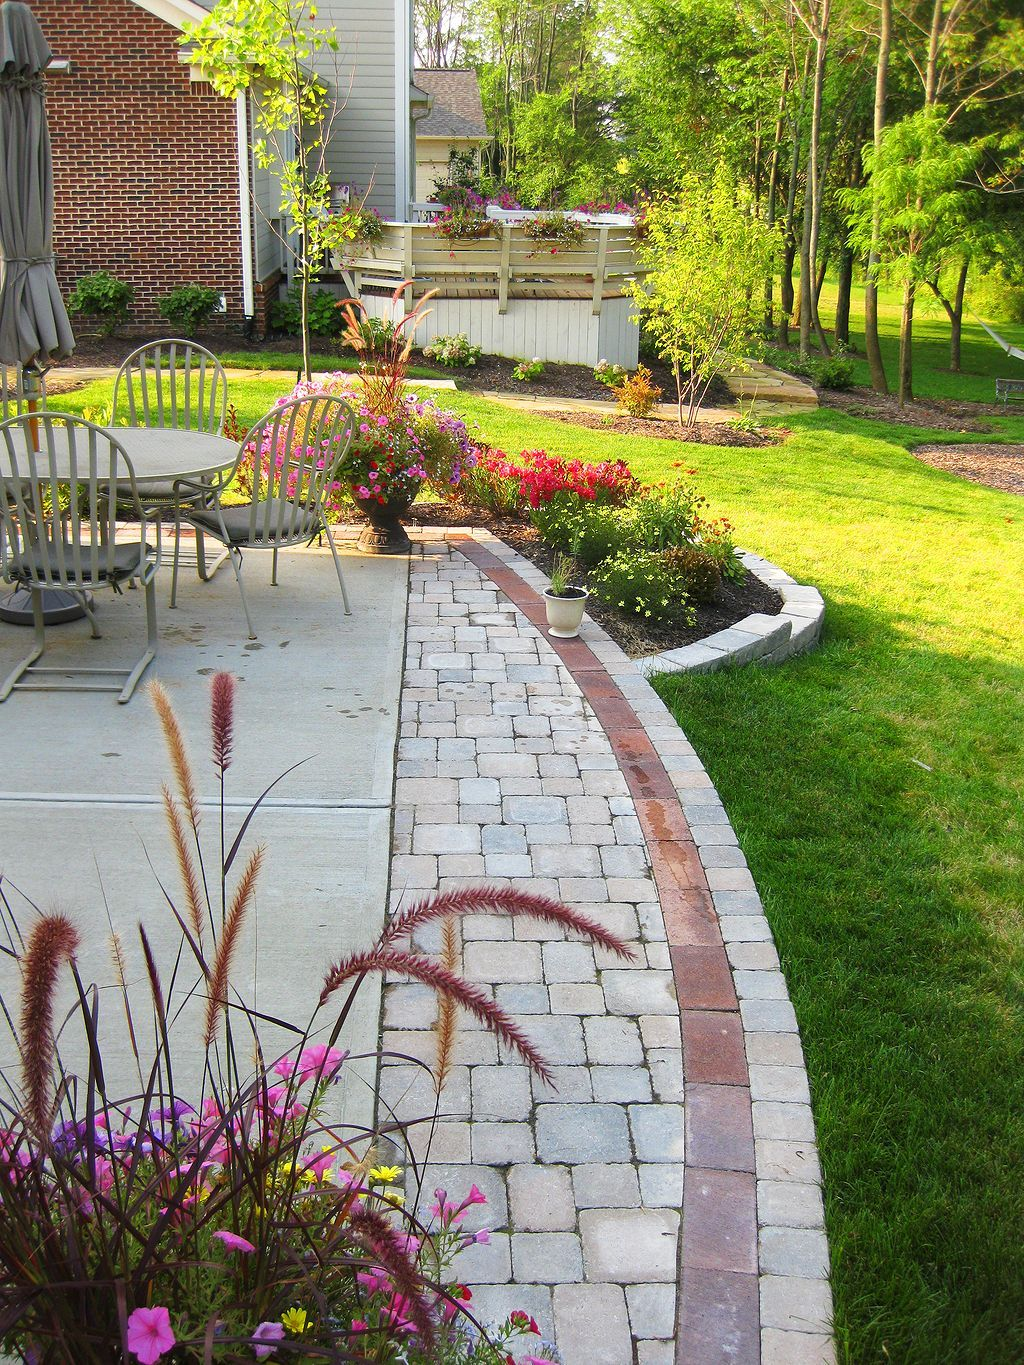 Nice 37 Cool Paver Patio Pattern Ideas For Your Garden Https Pinarchitecture Com 37 Cool Paver Pat Patio Pavers Design Patio Landscaping Patio Patterns Ideas